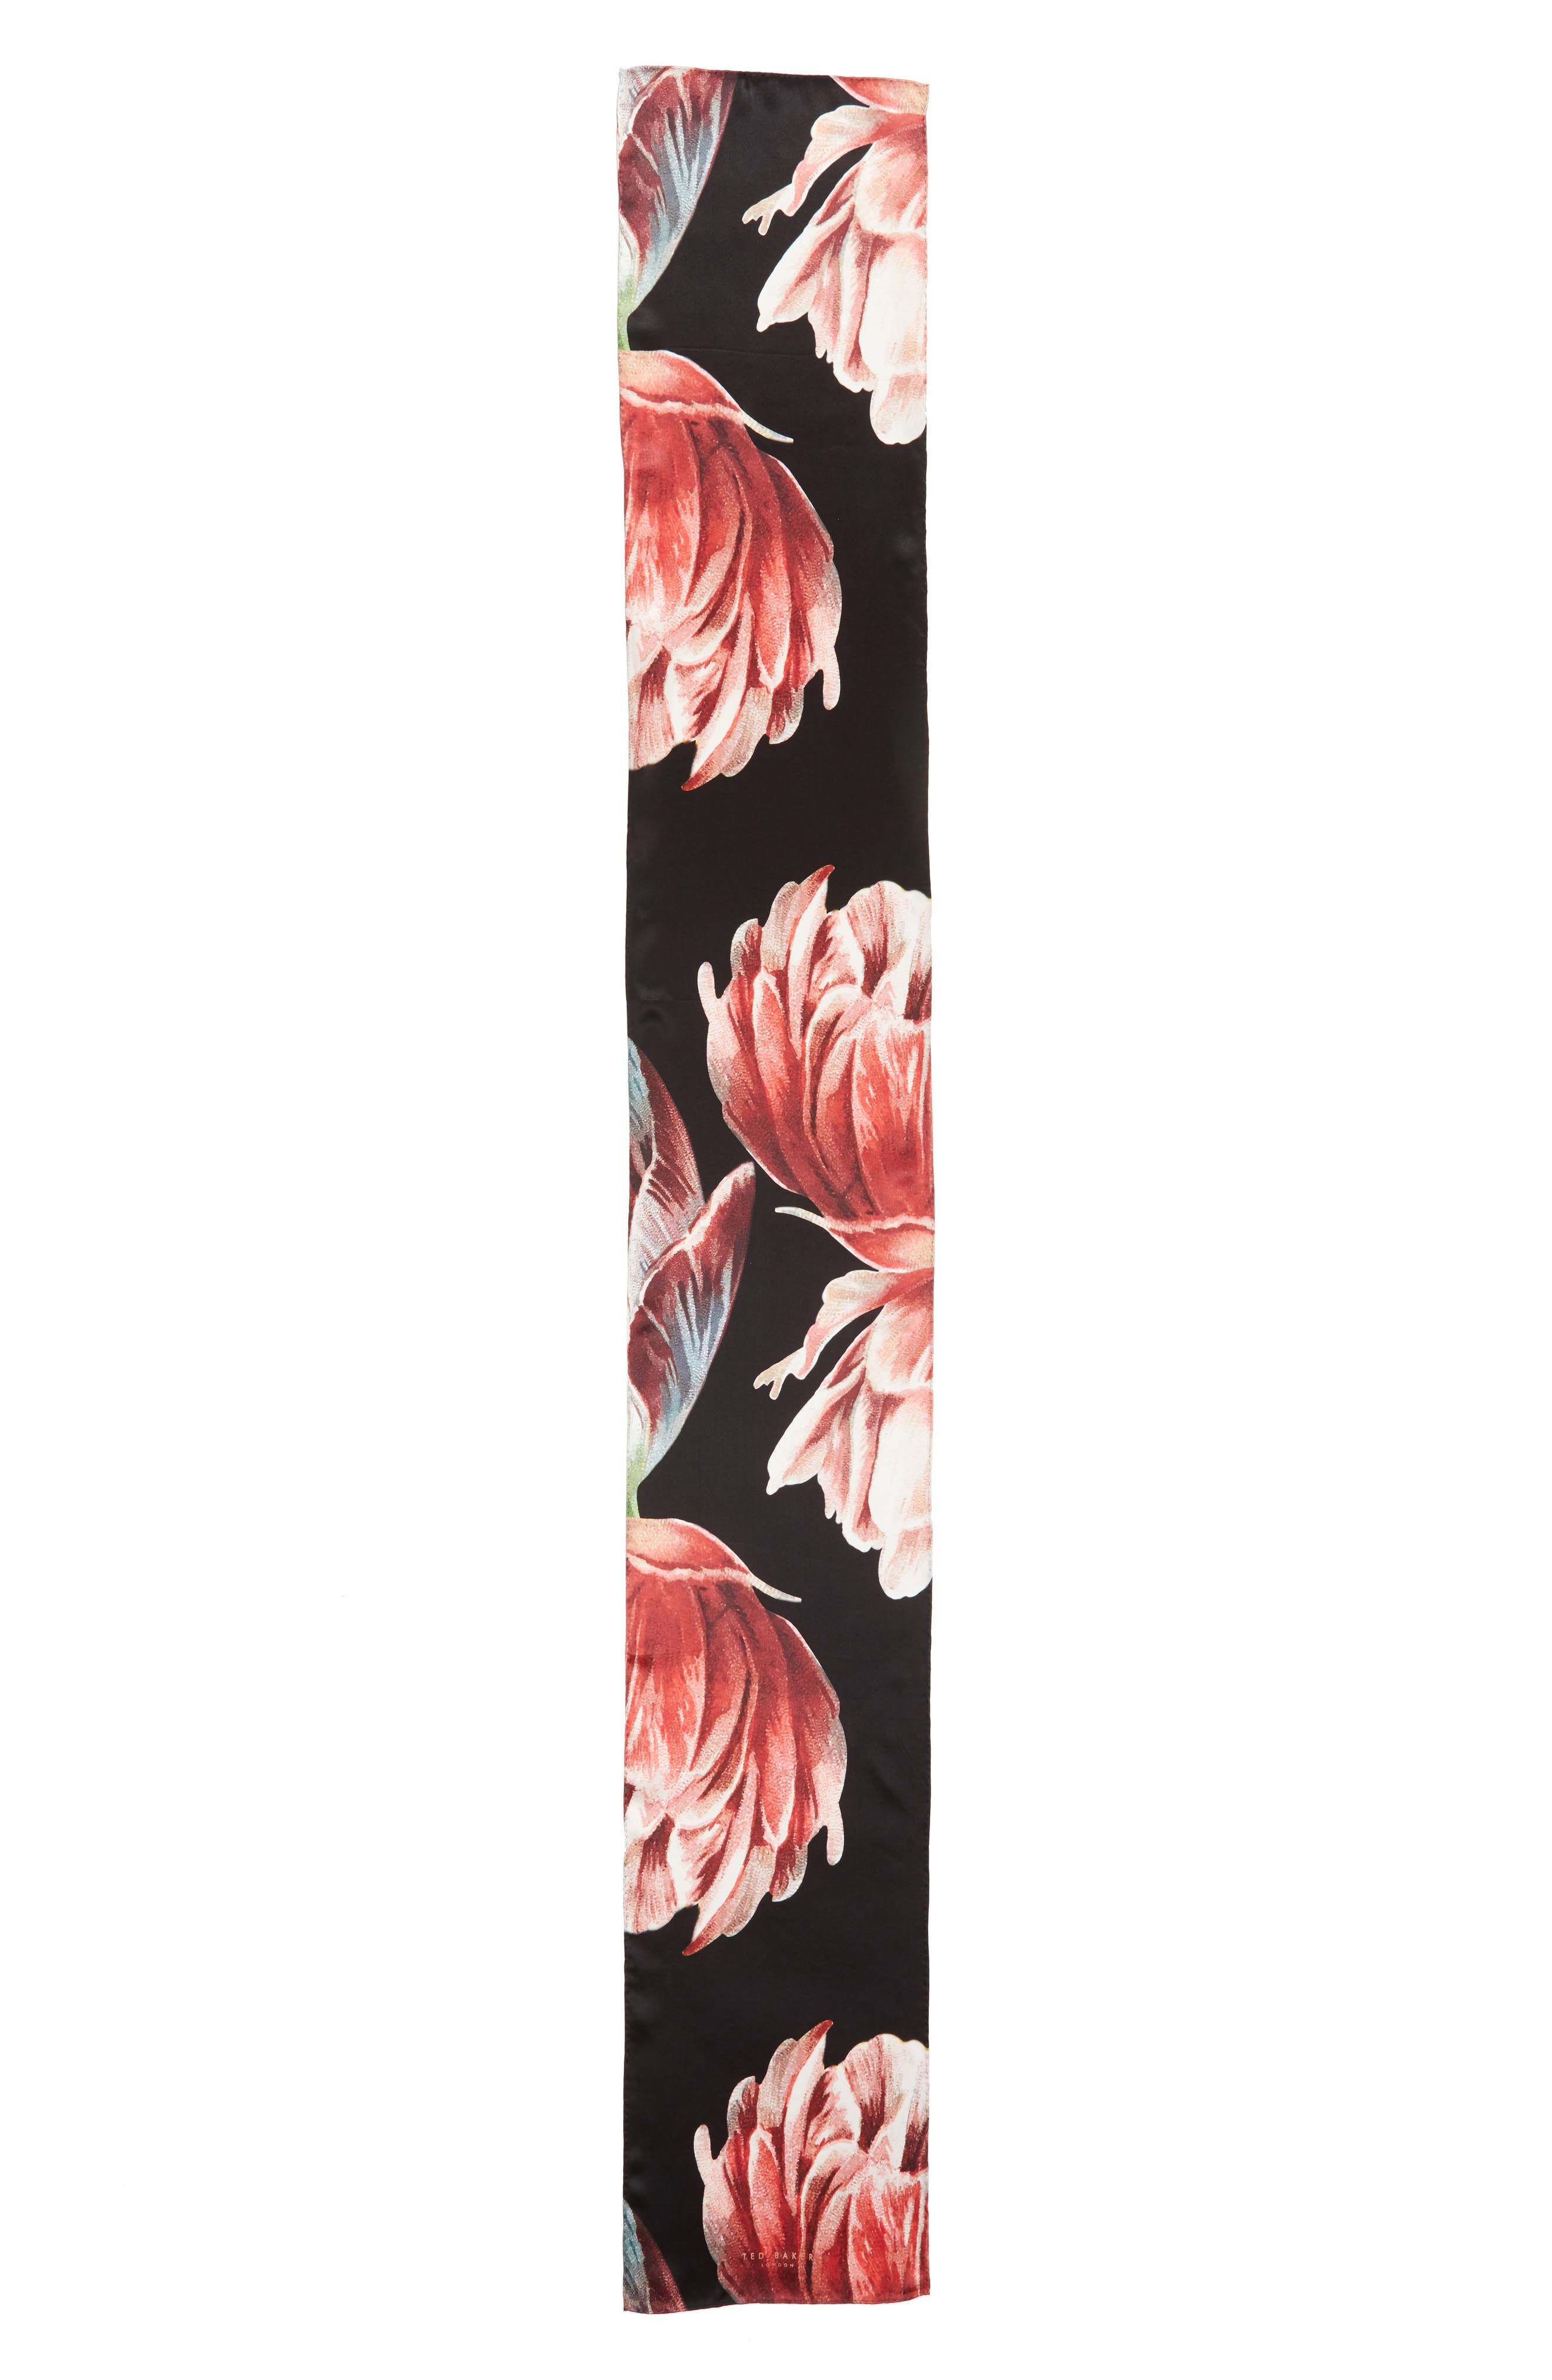 Tranquility Silk Scarf,                             Alternate thumbnail 3, color,                             001